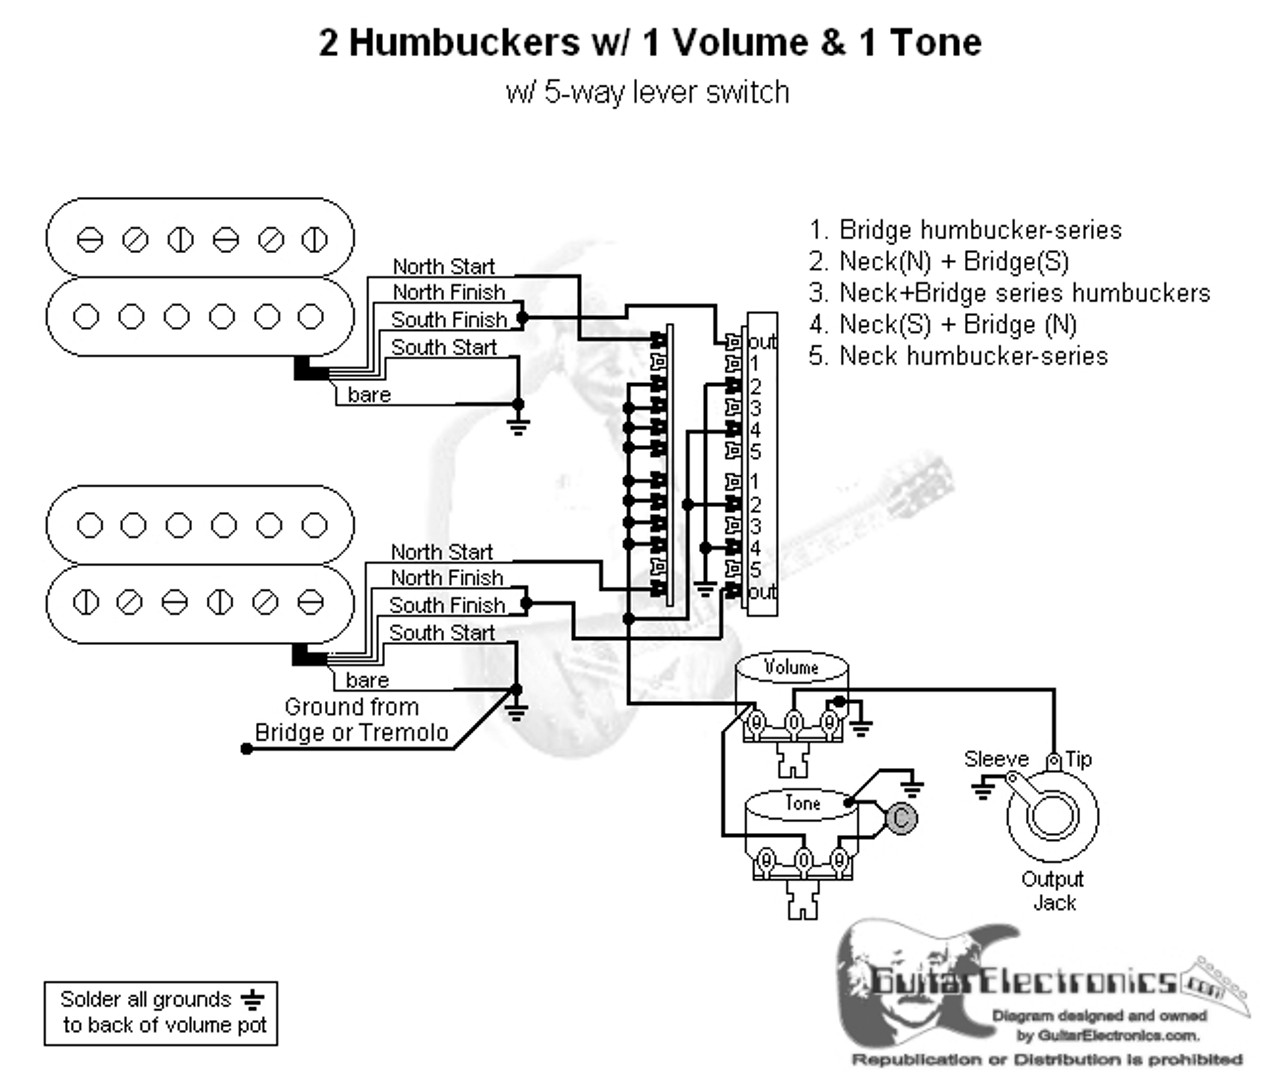 Wiring Diagram 2 Humbuckers 5way Lever Switch 1 Volume 1 ... on 2 lights 2 switches diagram, easy 4-way switch diagram, lutron 3-way switch diagram, 3 prong switch wiring diagram, single pole light switch wiring diagram, 5 way switch wiring diagram, marine rocker switch actuator diagram,